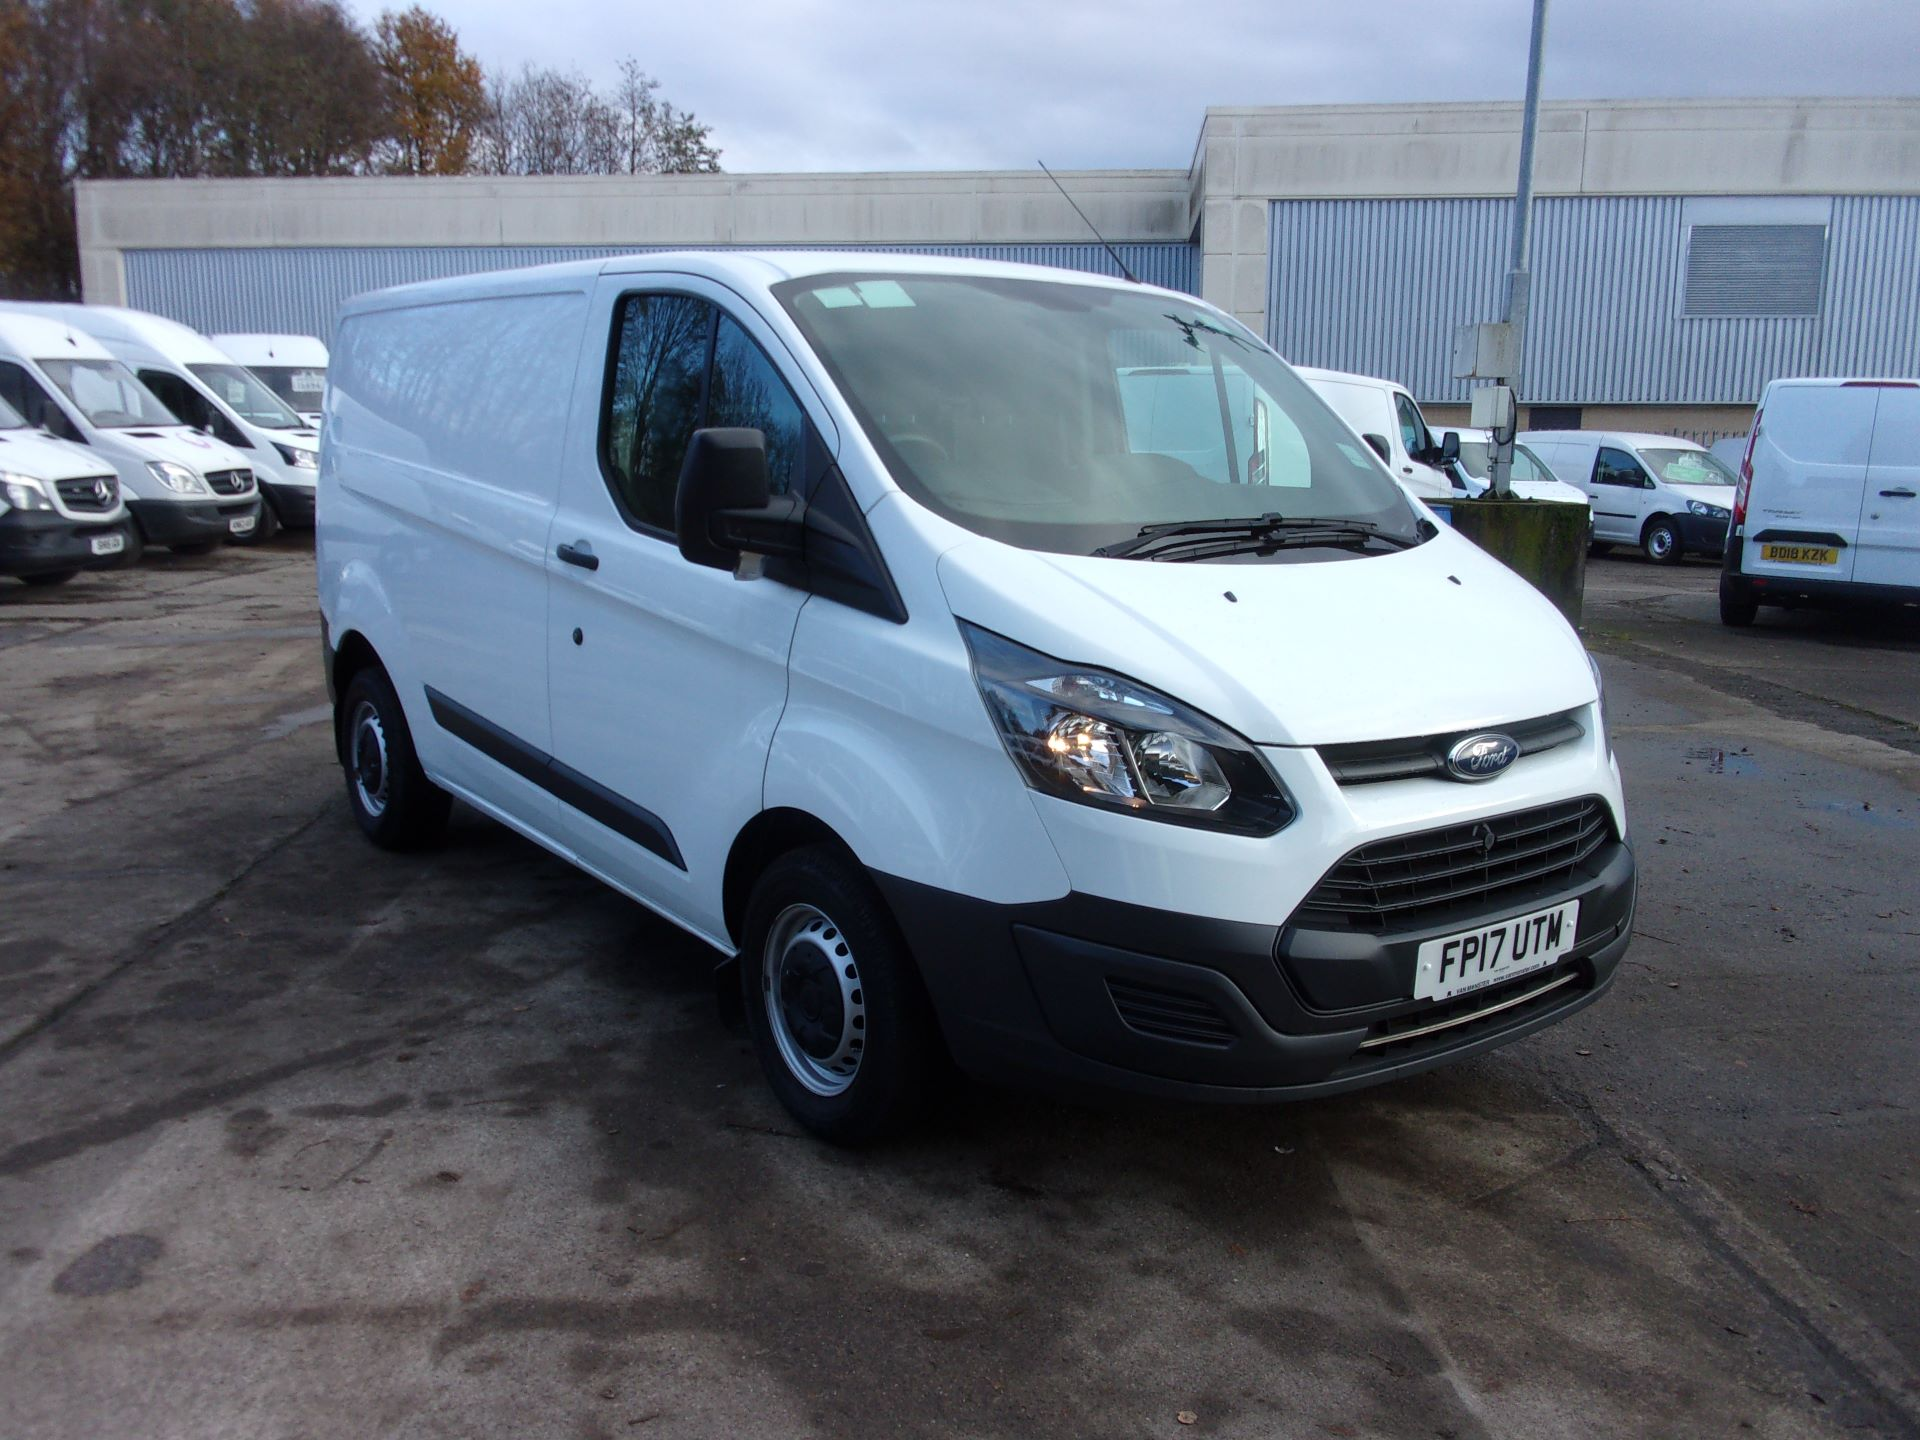 2017 Ford Transit Custom 290 L1 DIESEL FWD 2.0 TDCI 105PS LOW ROOF VAN EURO 6 *LIMITED TO 70MPH* (FP17UTM)